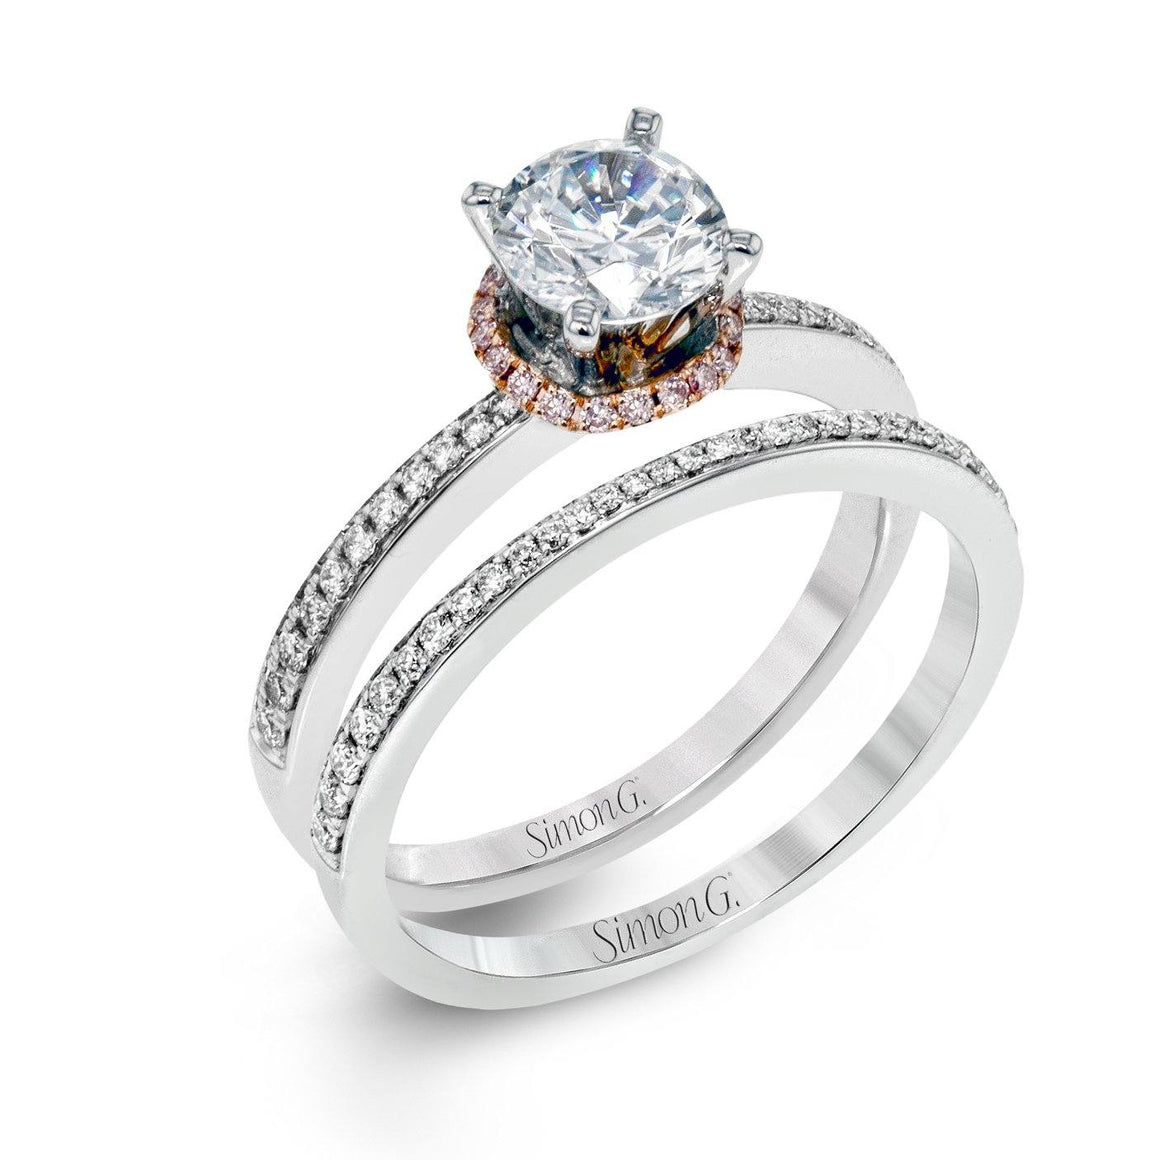 Simon G - MR2530, Engagement Ring Set, Simon G - Birmingham Jewelry